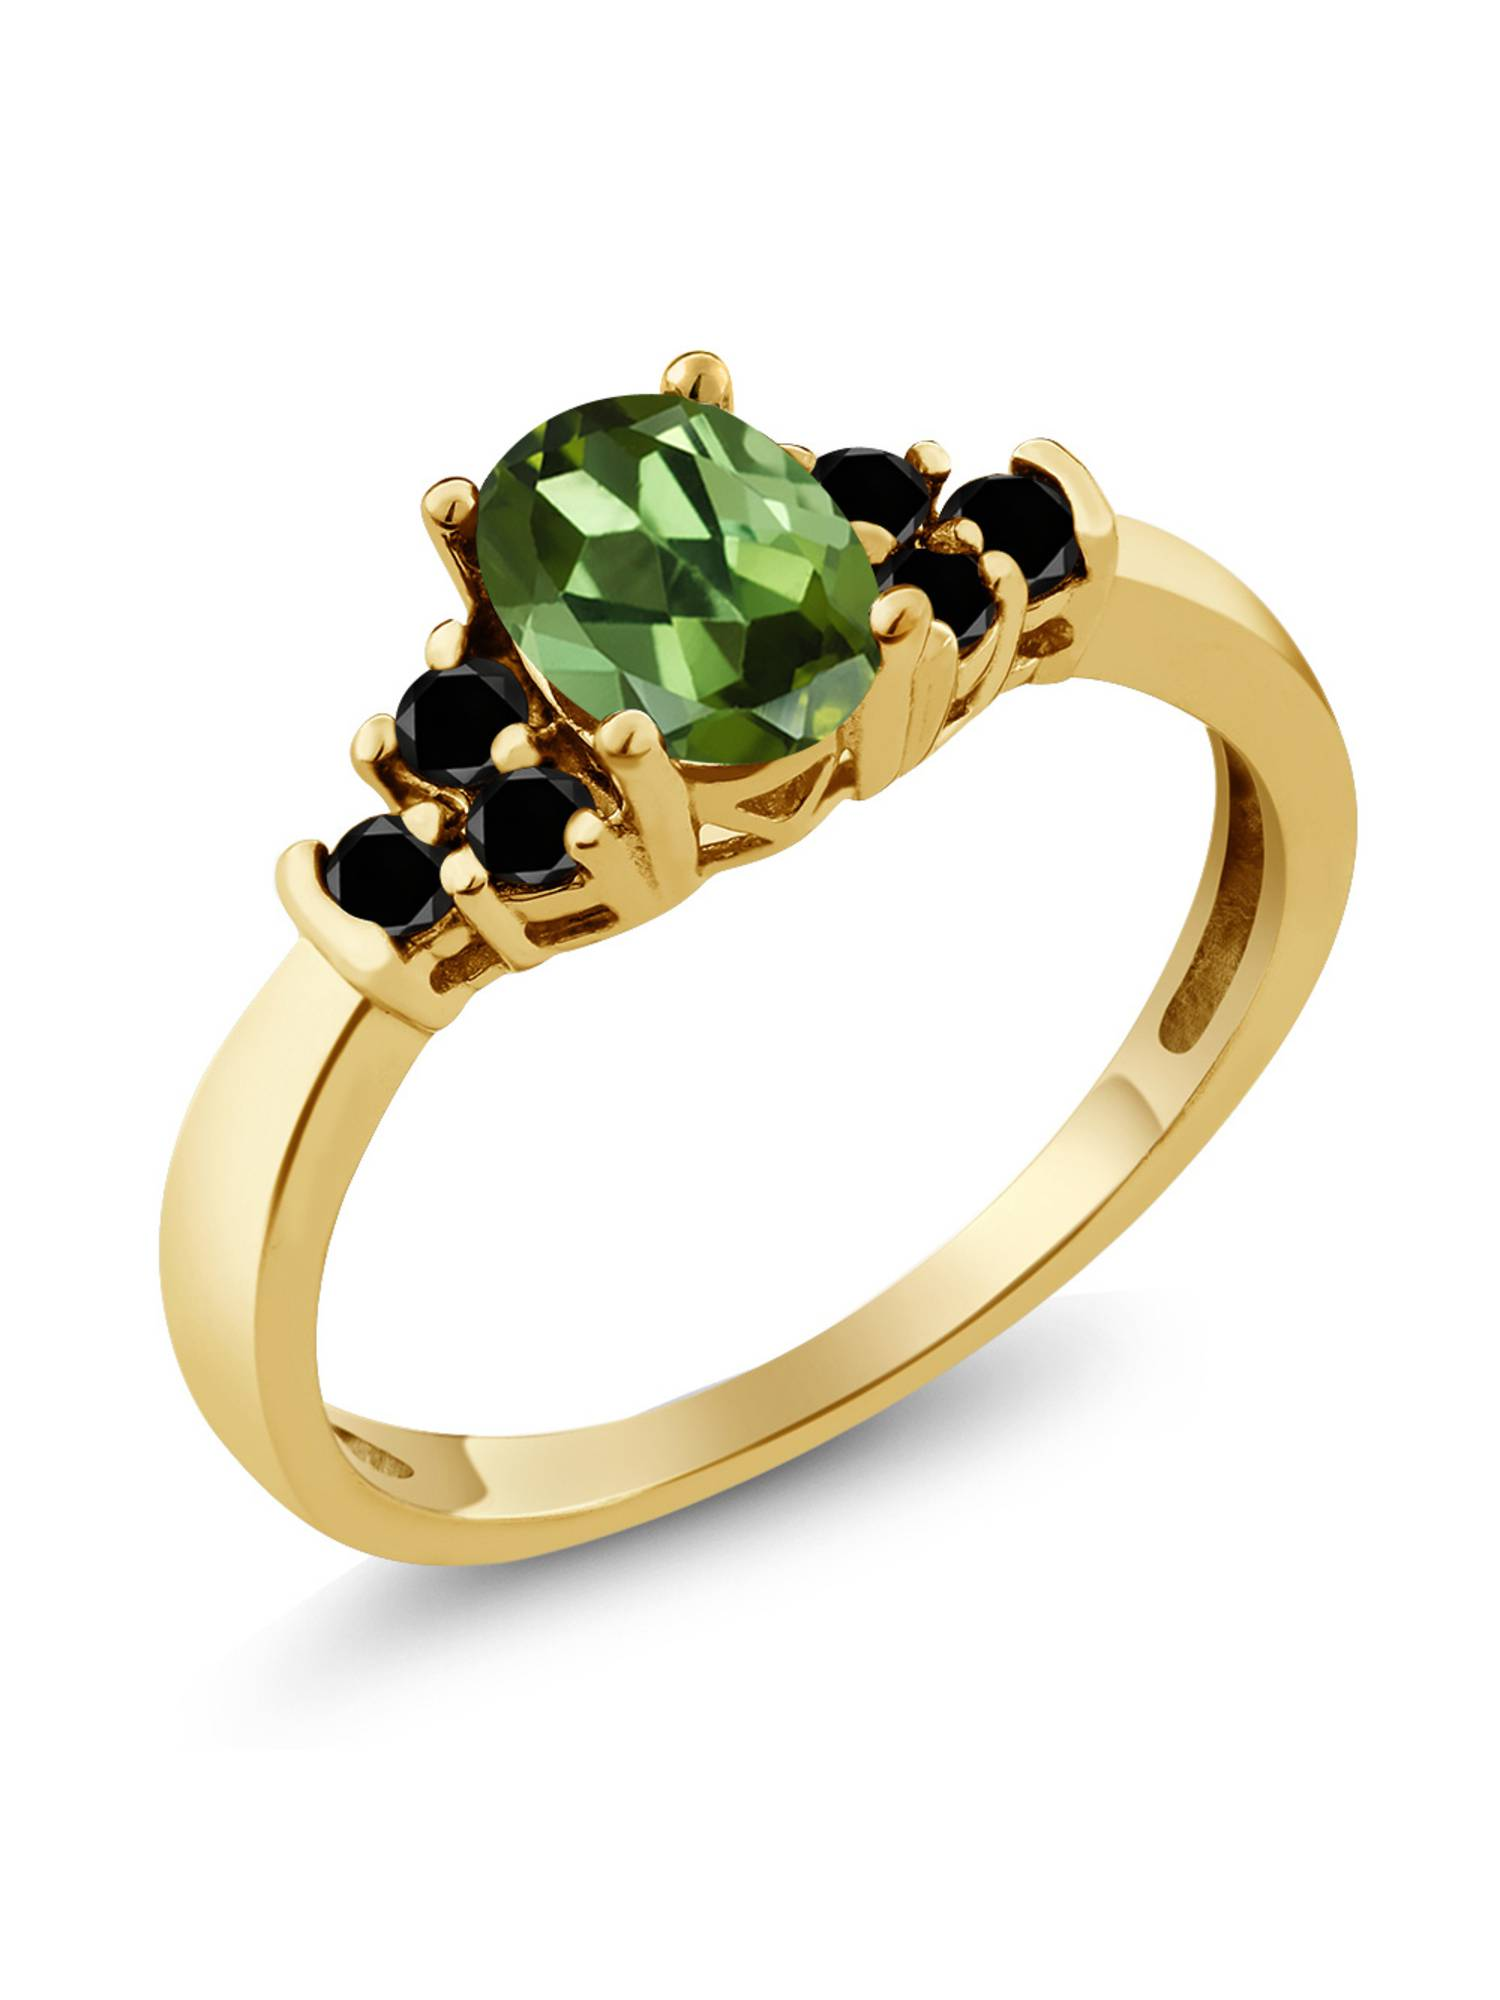 0.60 Ct Oval Green Tourmaline Black Diamond 925 Yellow Gold Plated Silver Ring by